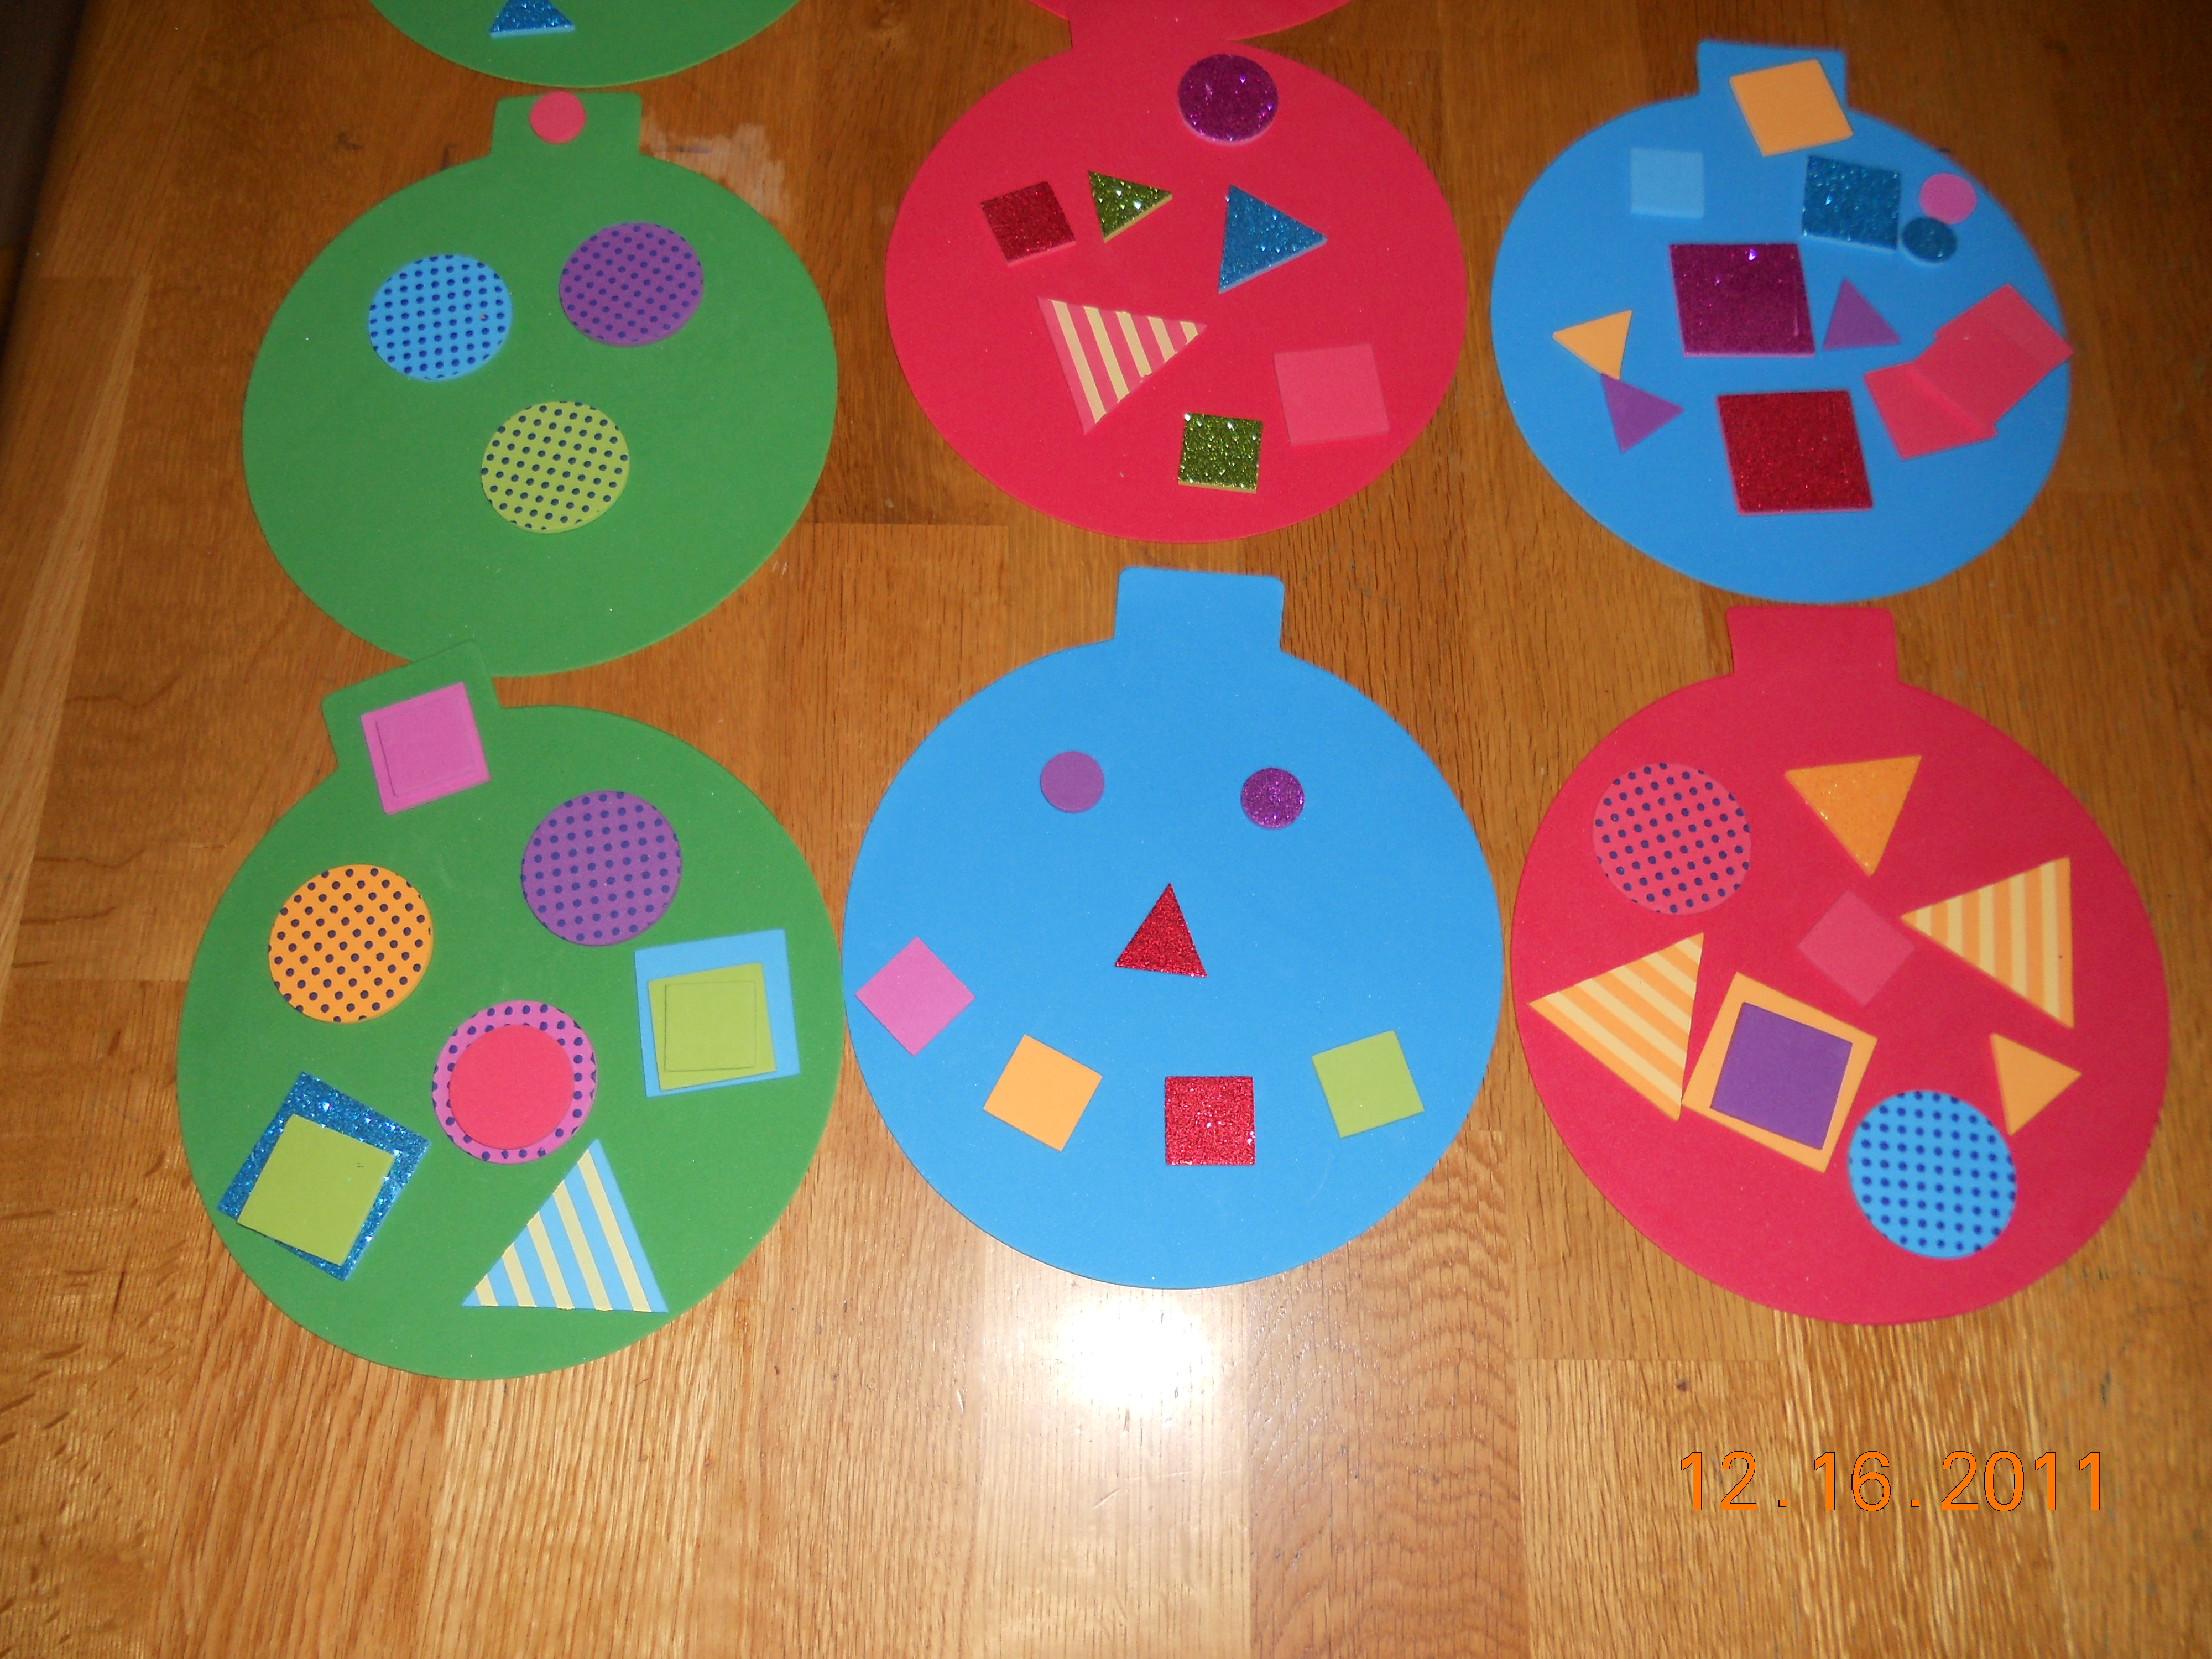 Exceptional Christmas Craft Ideas For Young Children Part - 4: Misslassy.files.wordpress.com. Easy Preschool Christmas Crafts